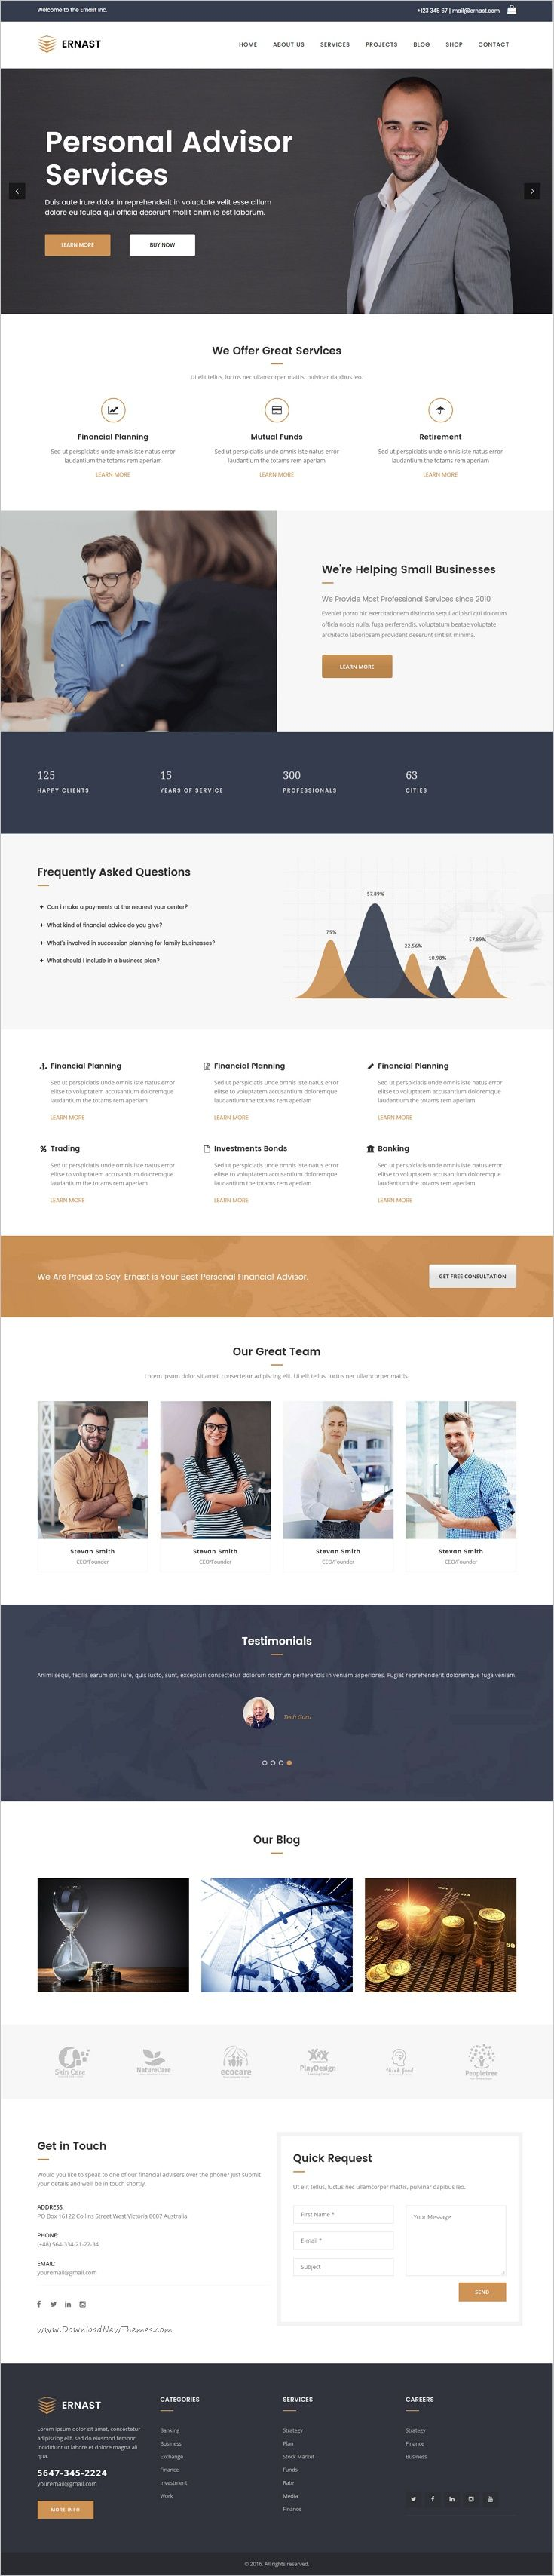 Emast is an awesome responsive 3in1 #WordPress theme for #finance, insurance, consulting and similar business website download now➩  https://themeforest.net/item/ernast-business-finance-theme/16590793?ref=Datasata